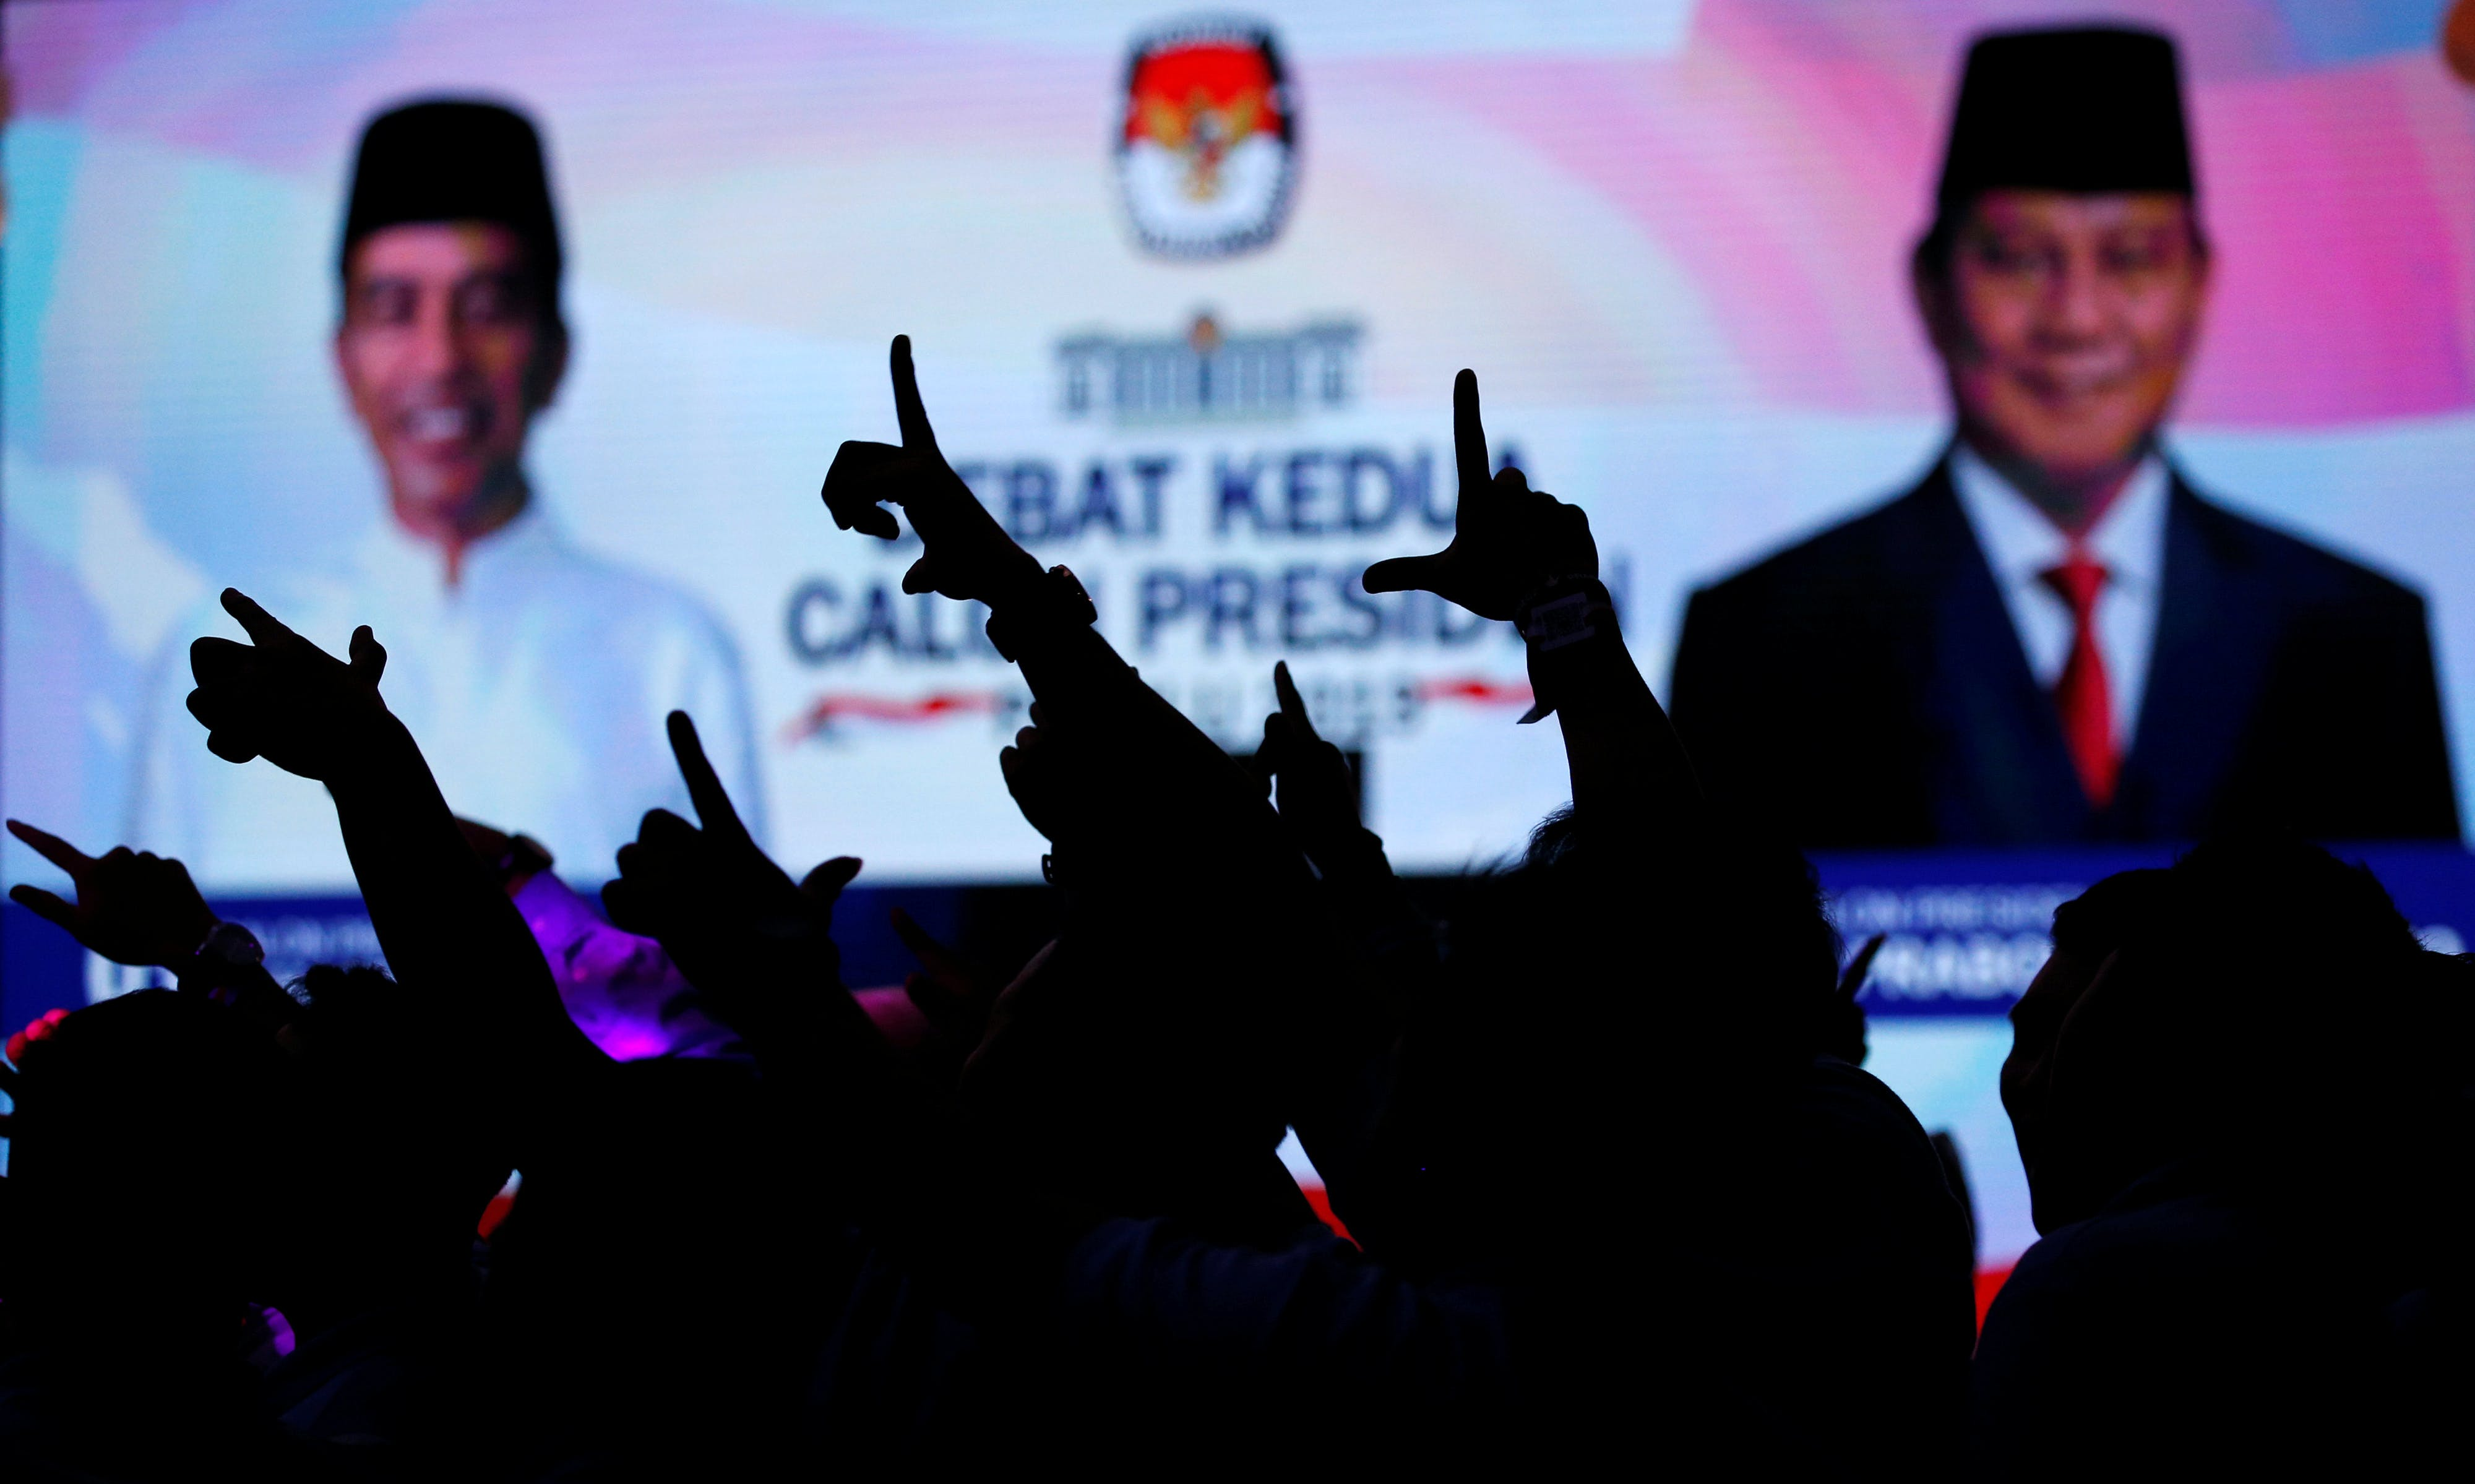 Indonesia Has an Urgent Need for Political and Media Literacy Education